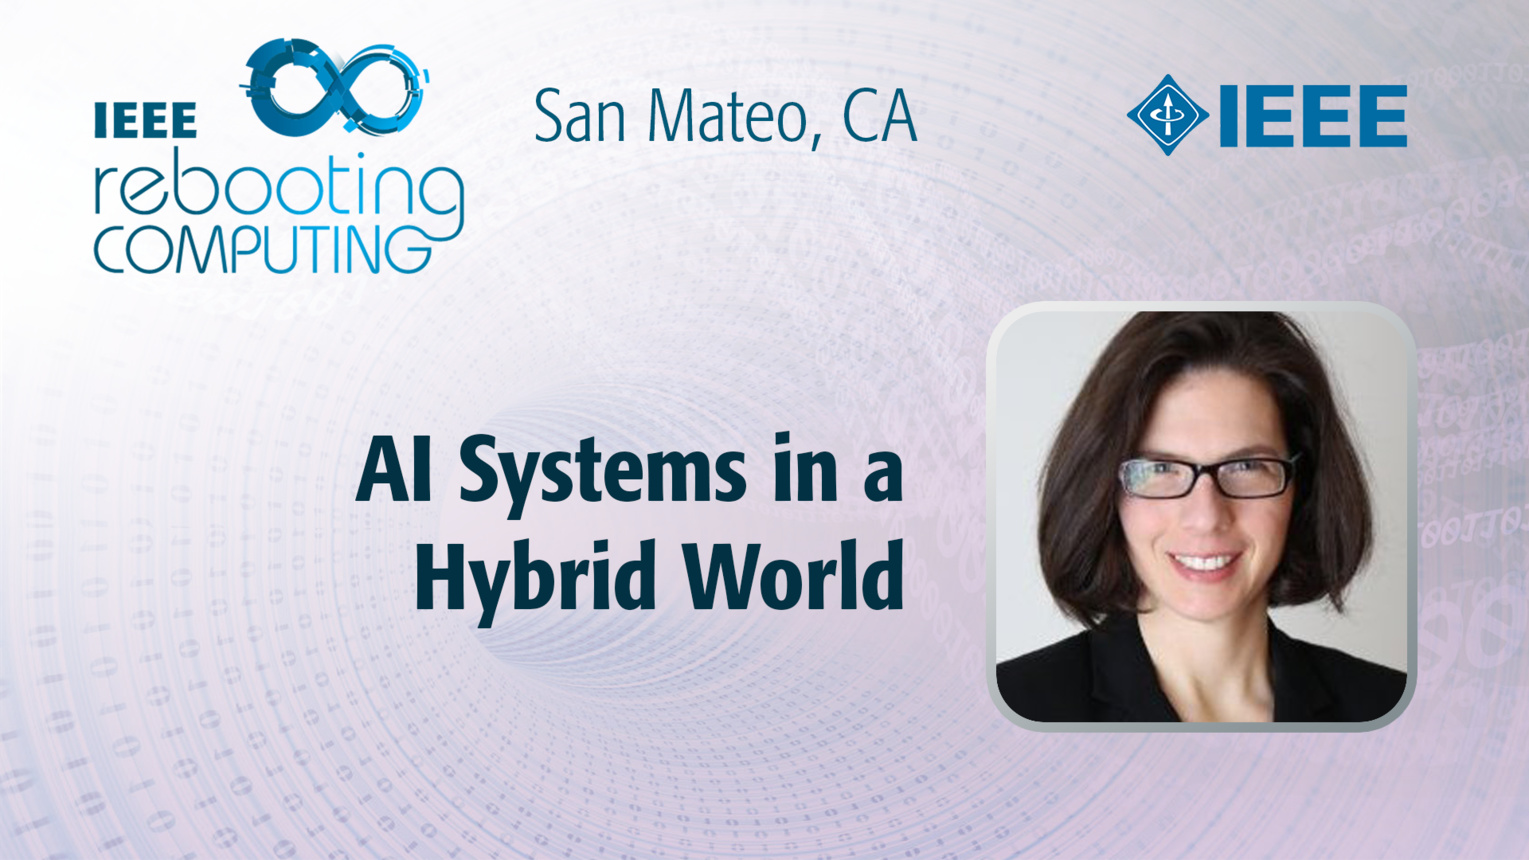 AI Systems in a Hybrid World - Cindy Goldberg - ICRC San Mateo, 2019